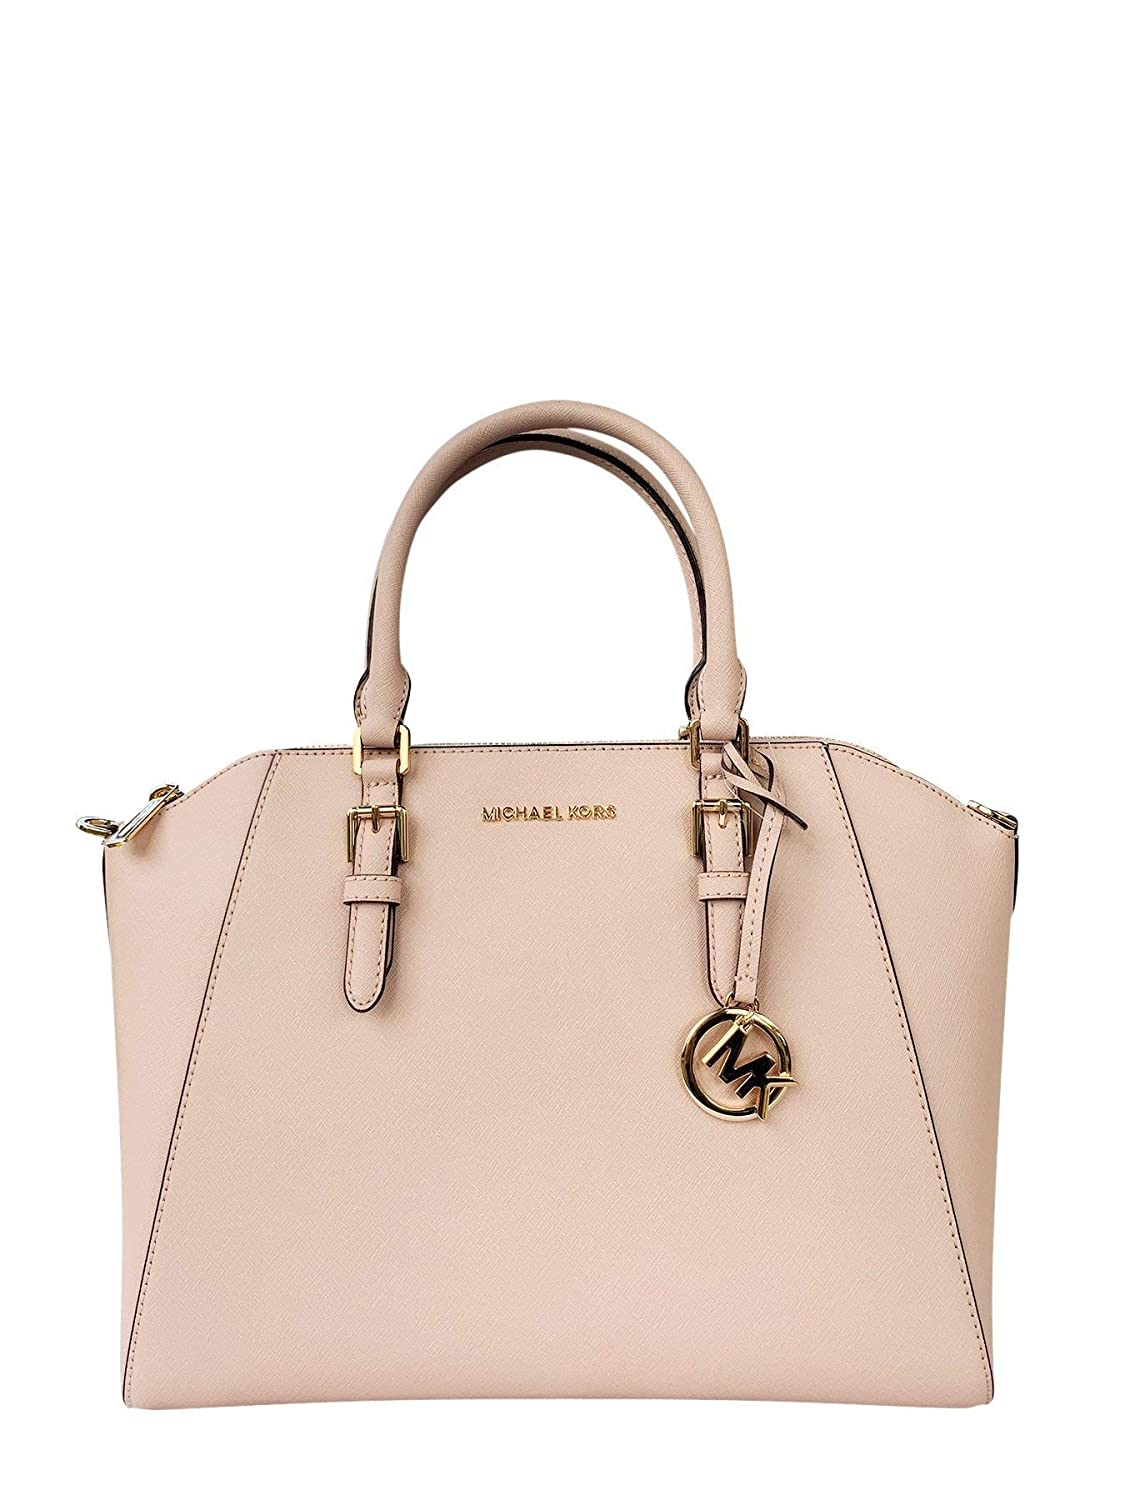 Michael Kors Women's Ciara - Large Top Zip Satchel